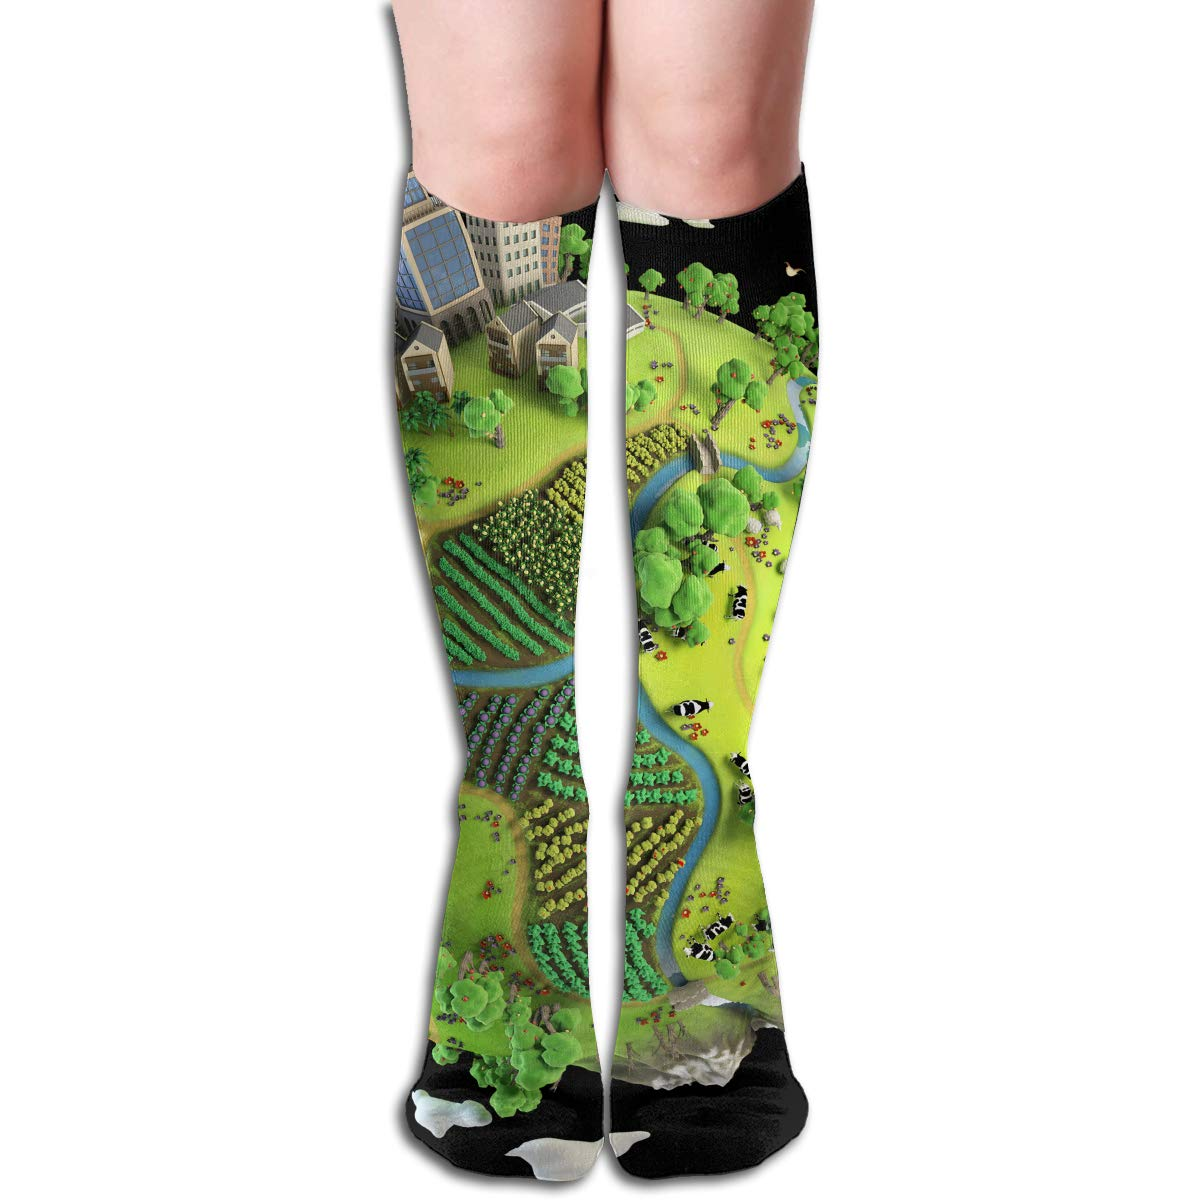 19.68 Inch Compression Socks Earth Planet High Boots ...